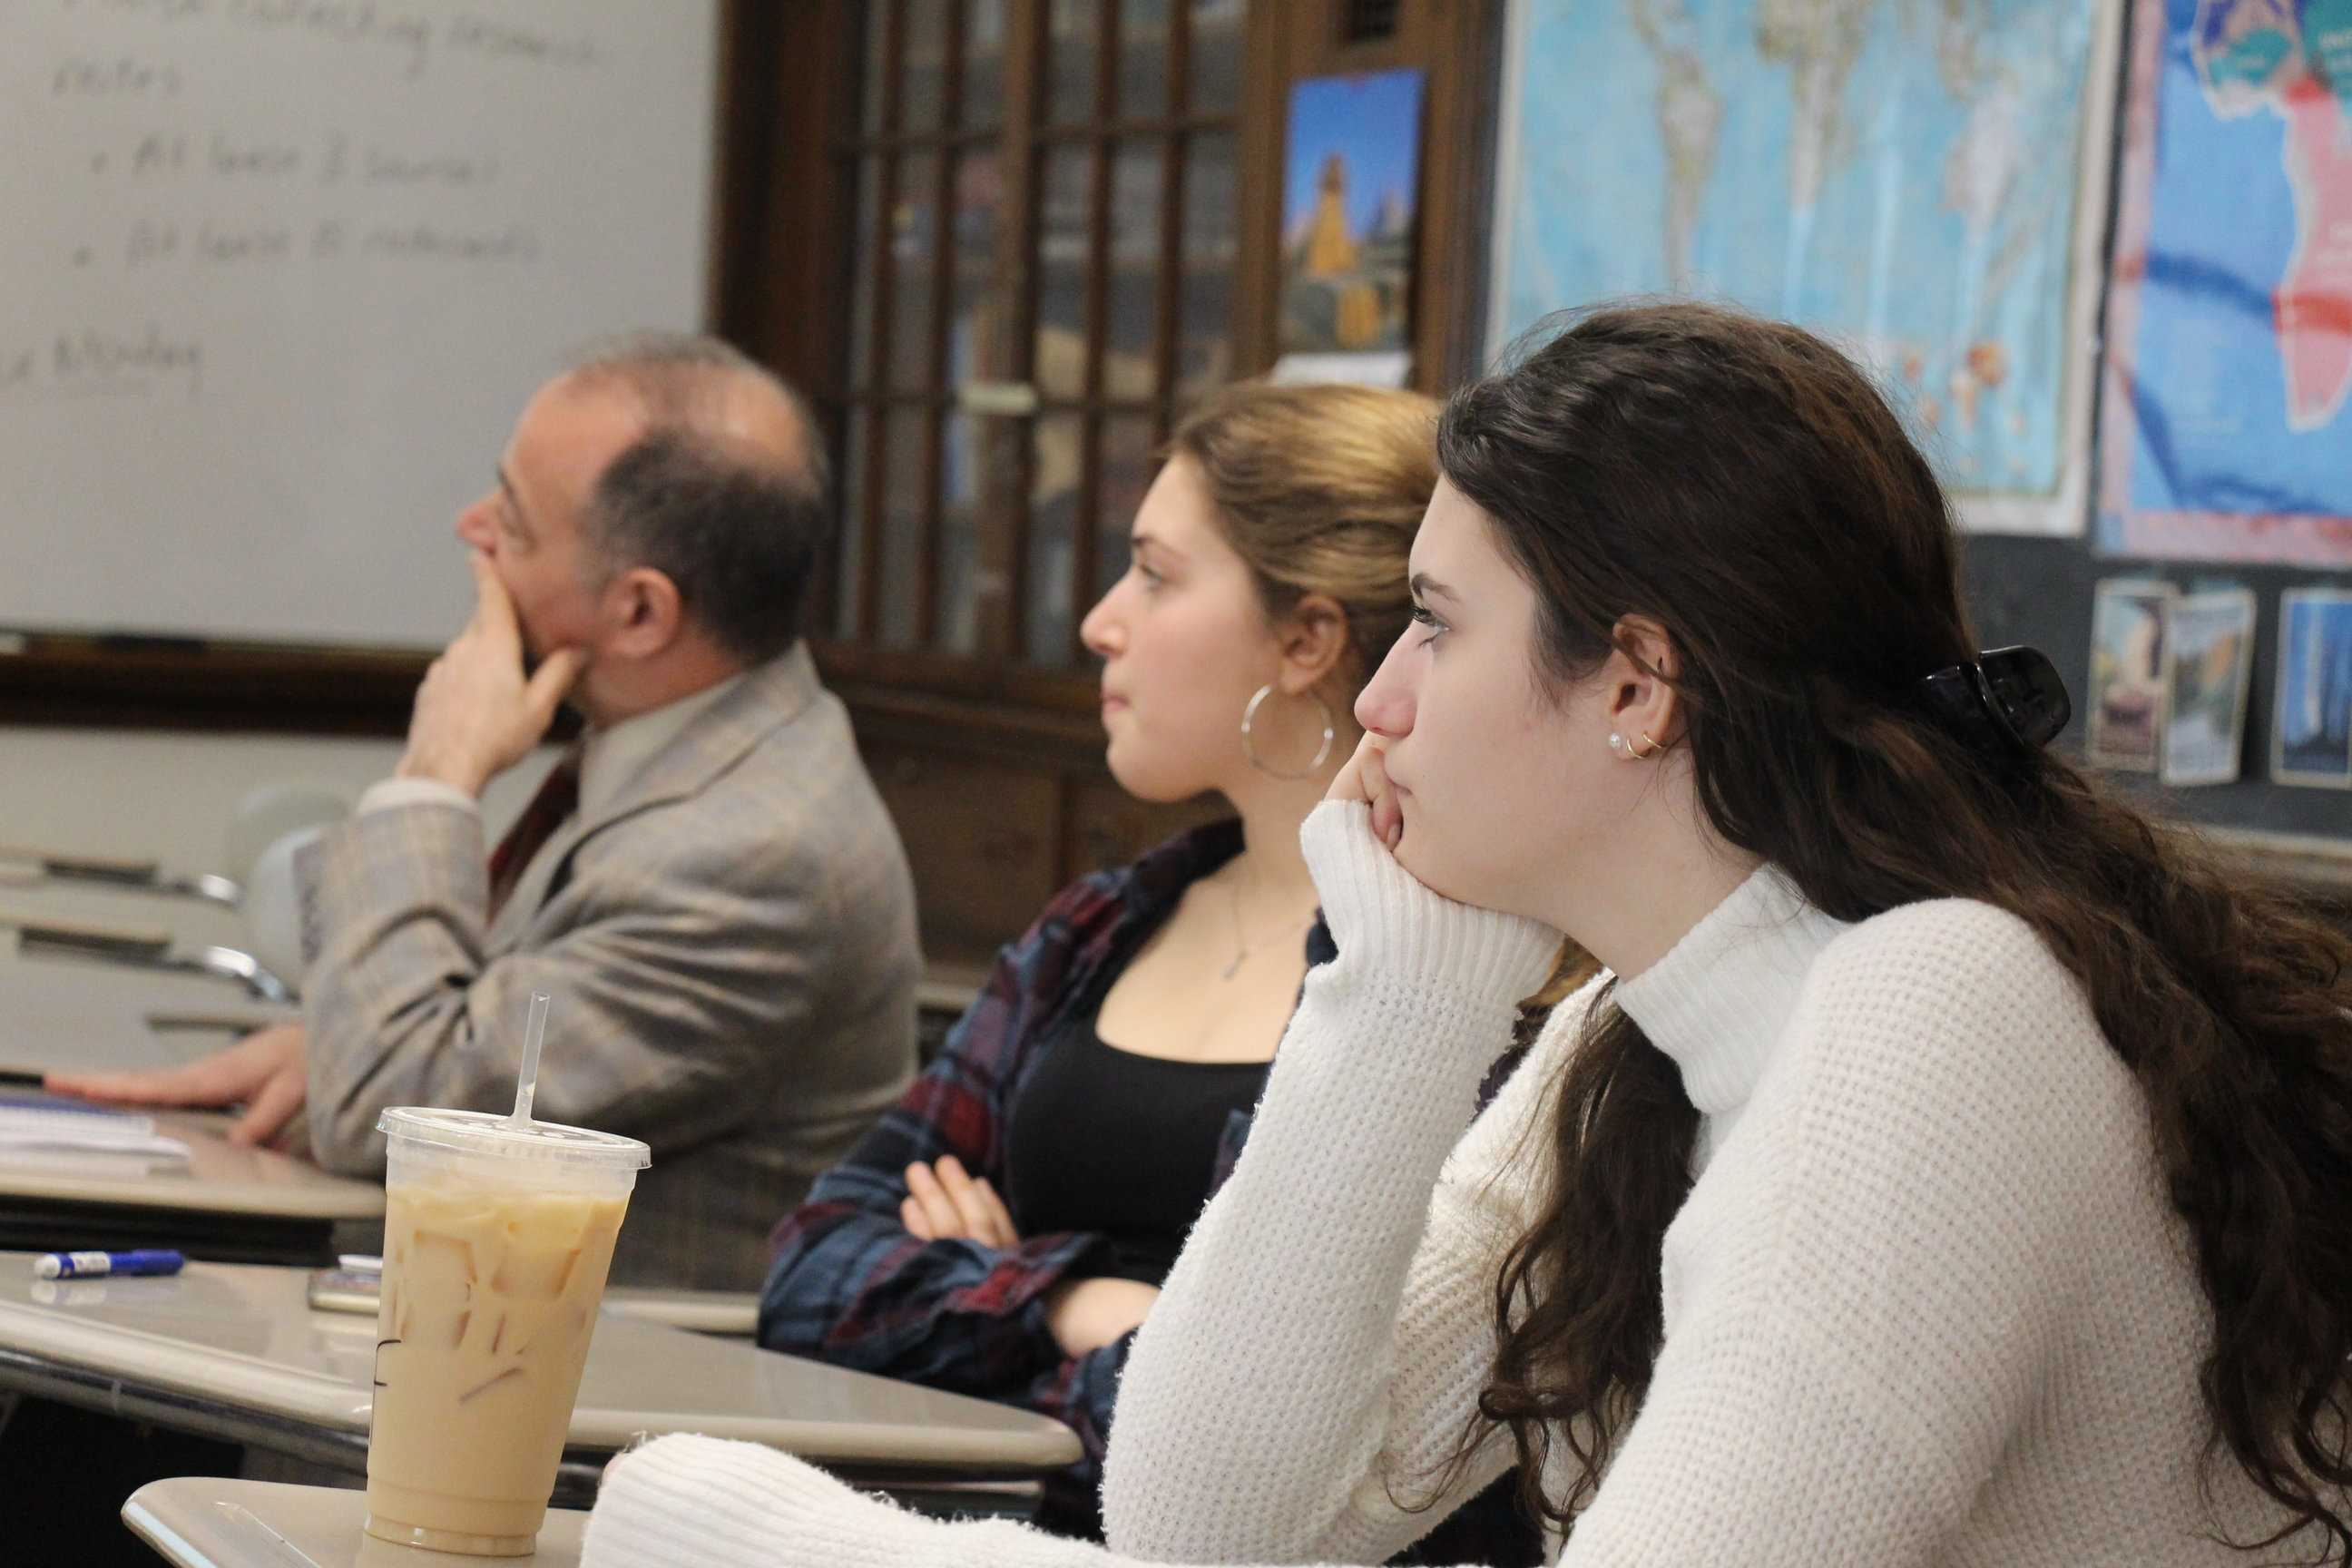 Religious clubs, such as the Jewish Student Club speak about current events and provide a safe place.